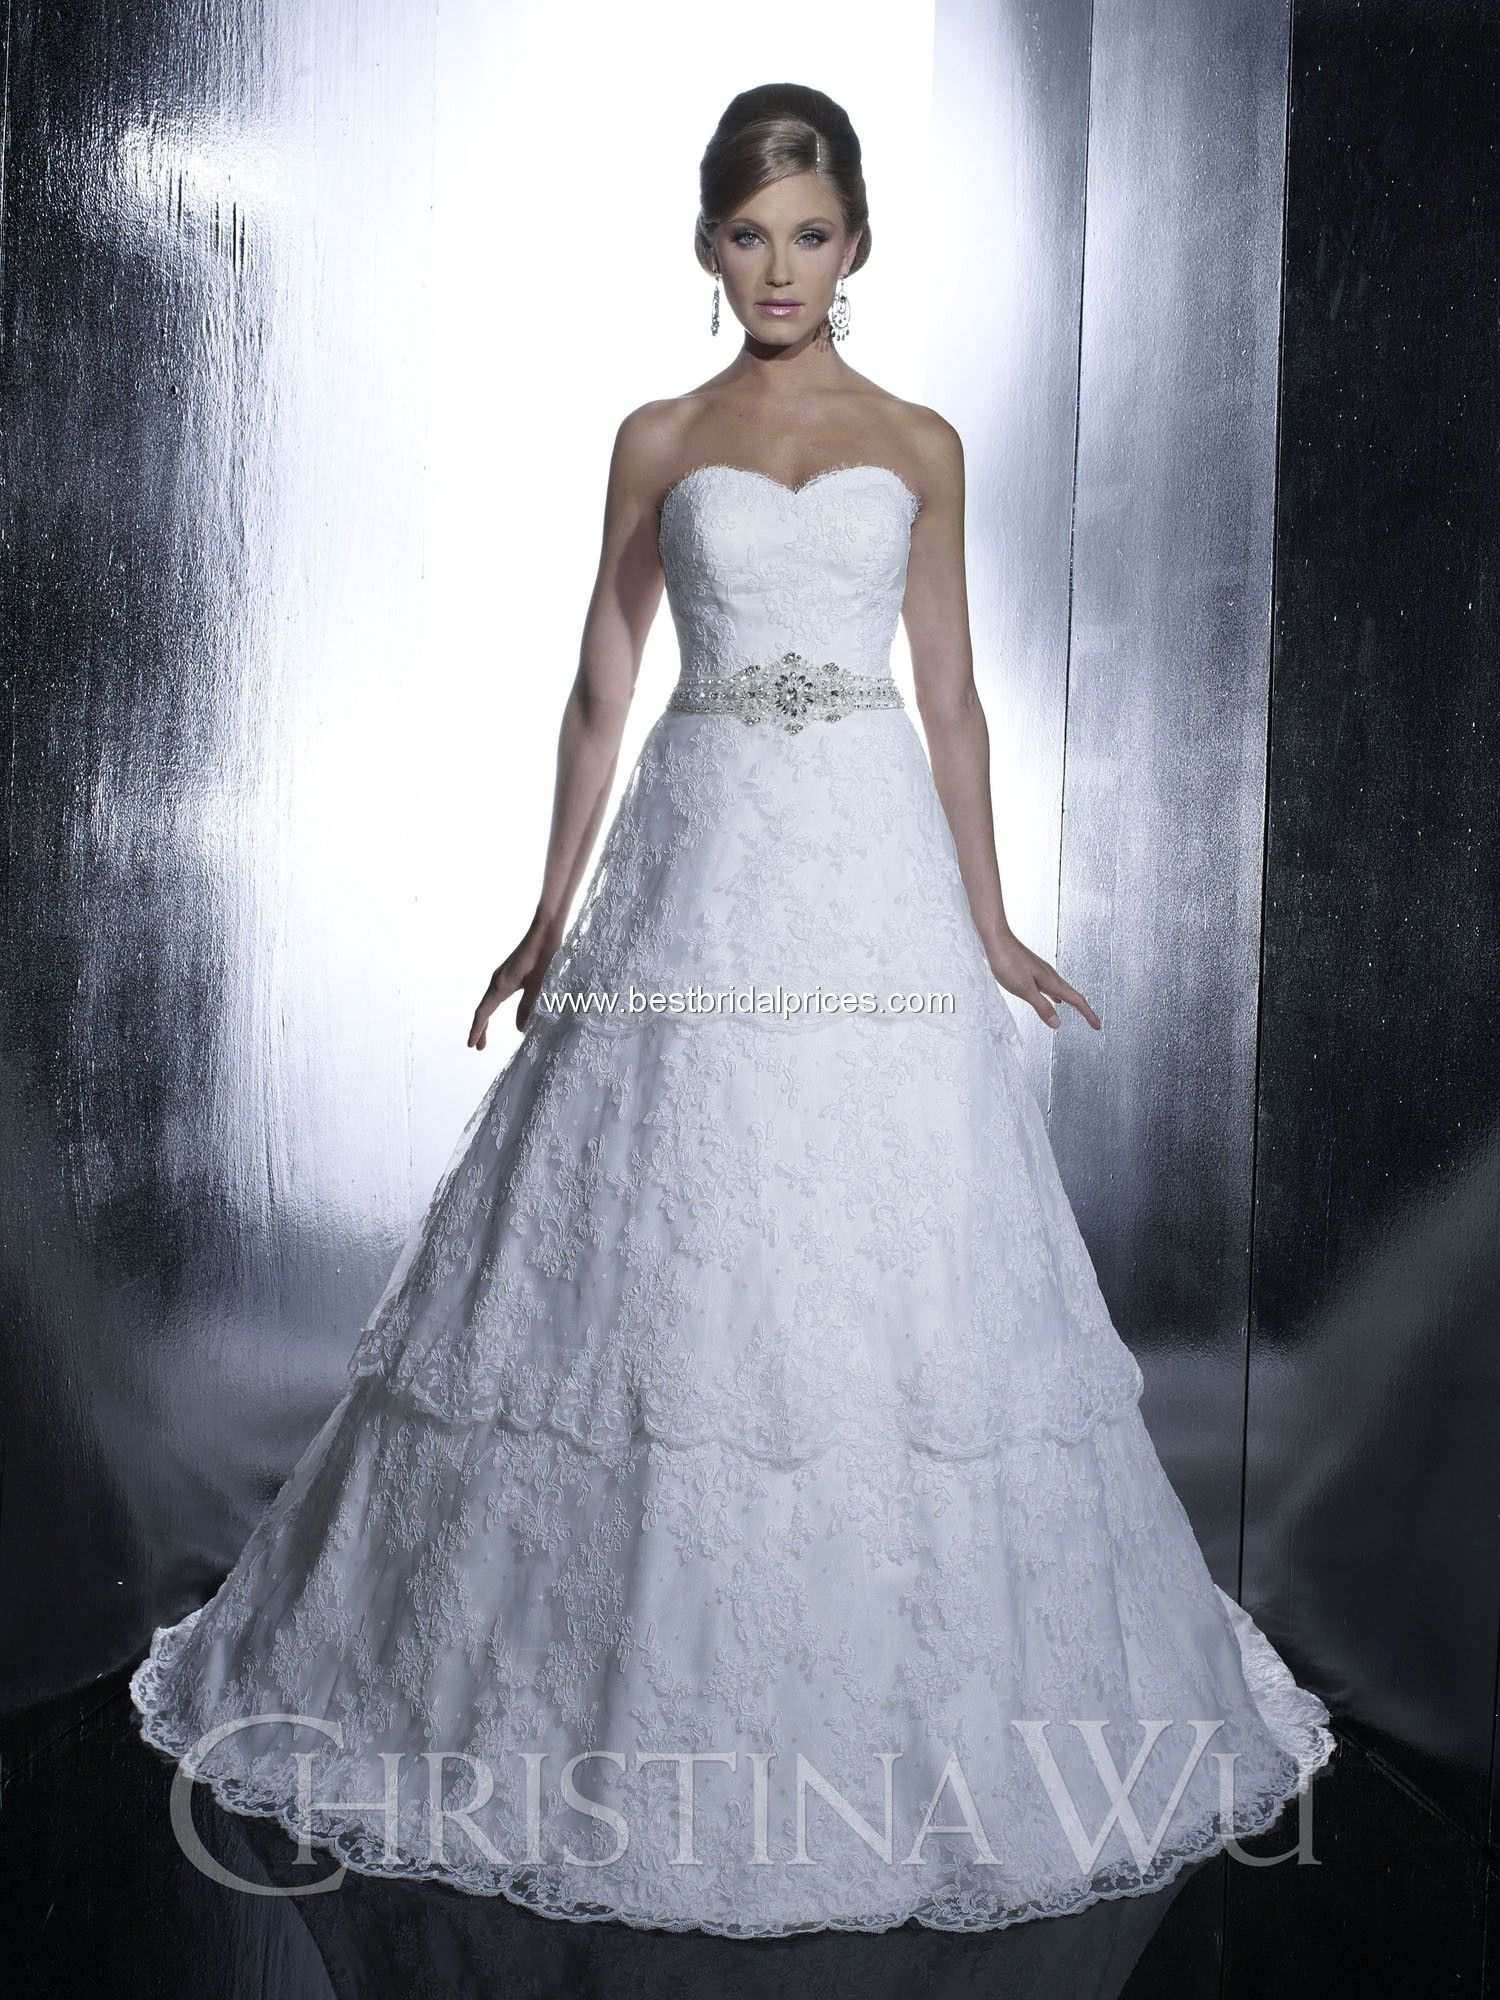 Christina wu wedding dresses style weddings pinterest